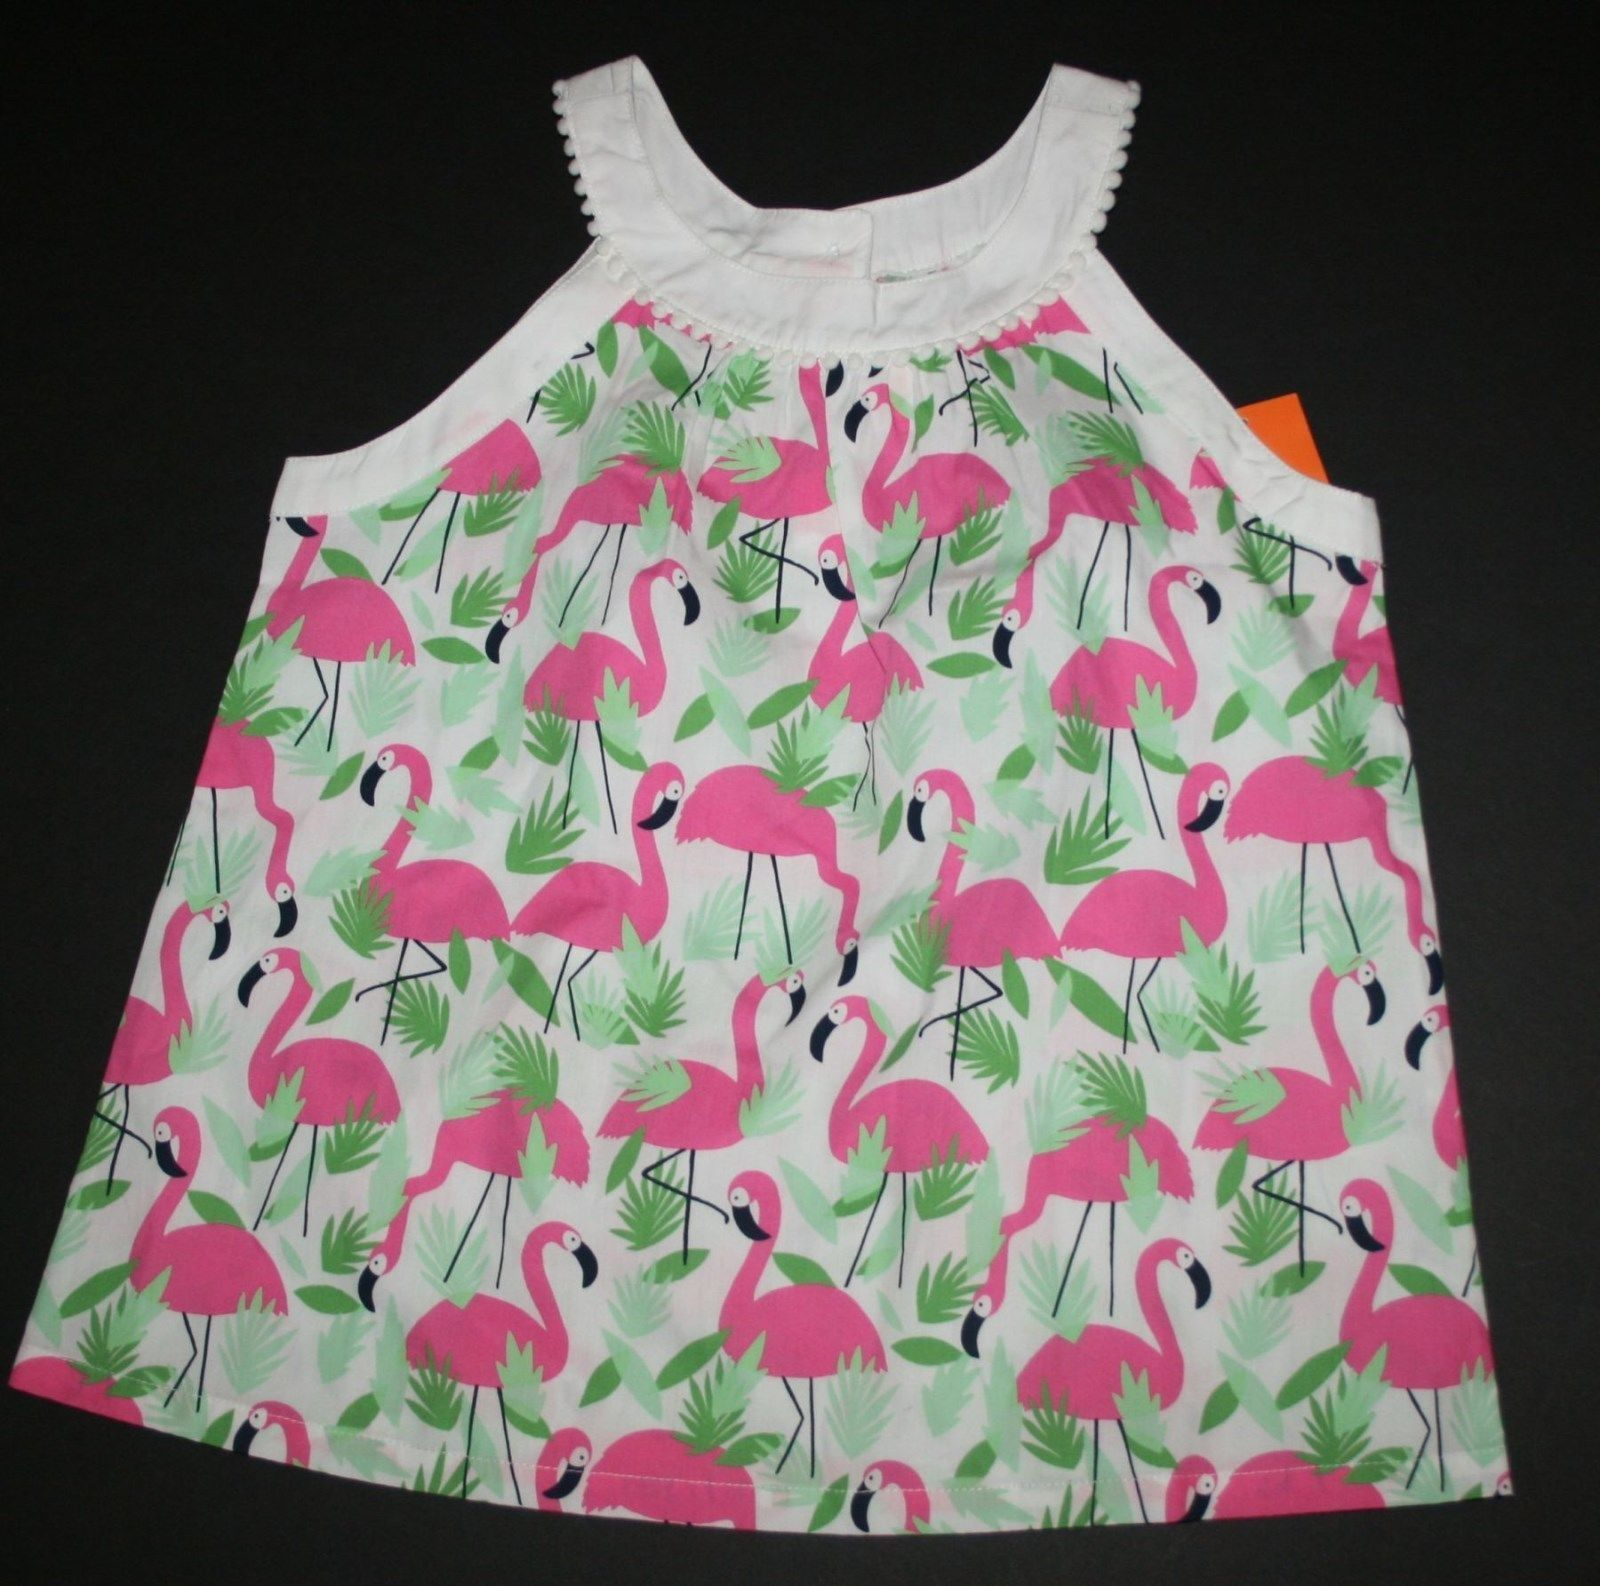 Gymboree Flamingo Tank Top Girls Size 10 Products Pinterest Mom N Bab Fifth Pants Blue Stripe 4t